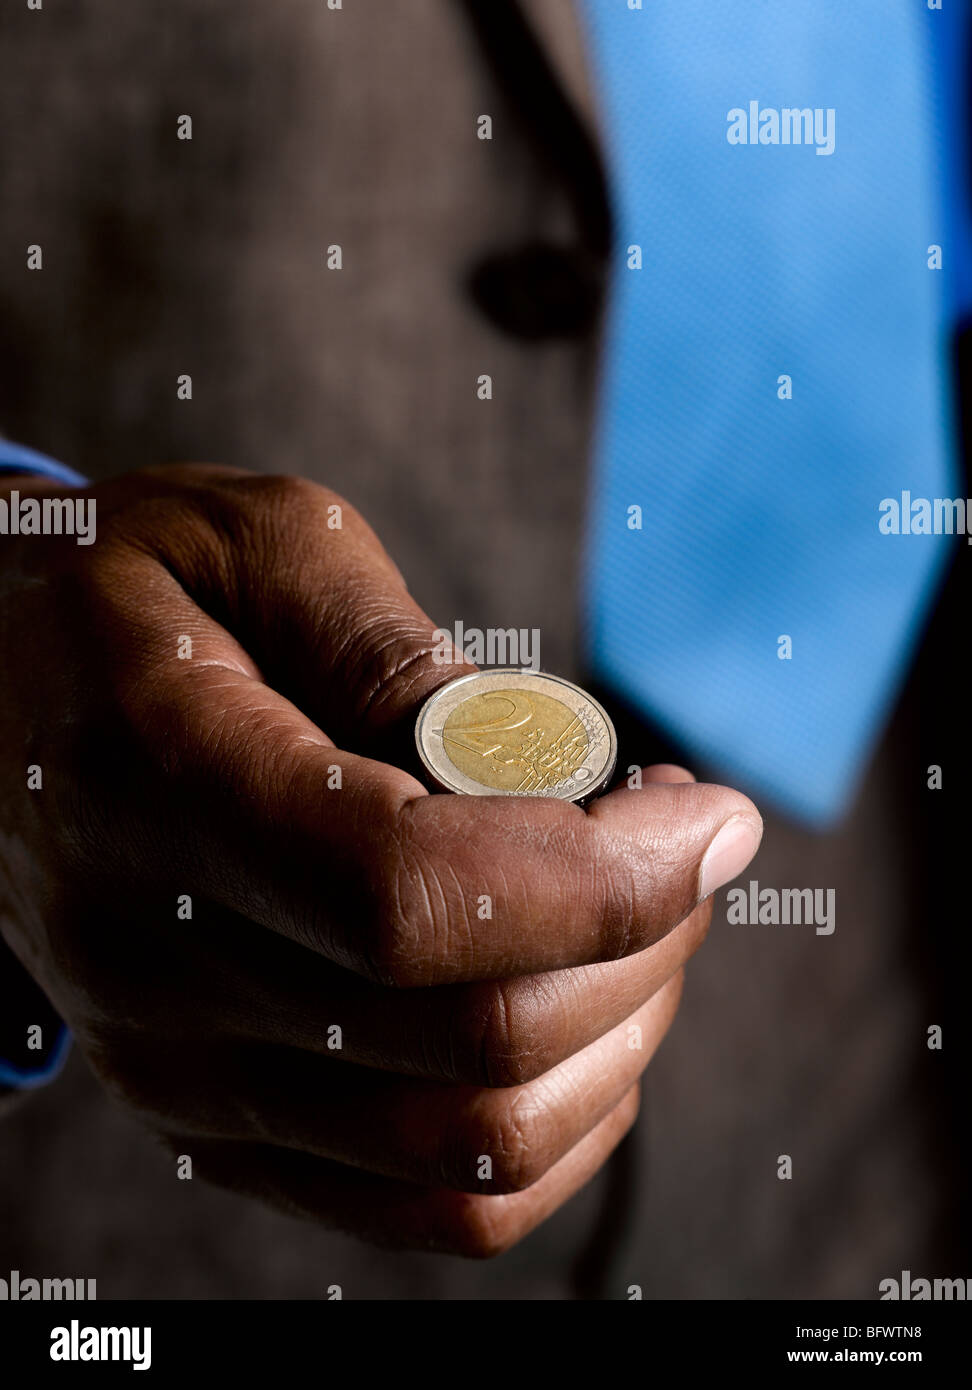 Business man ready to flip euro coin - Stock Image